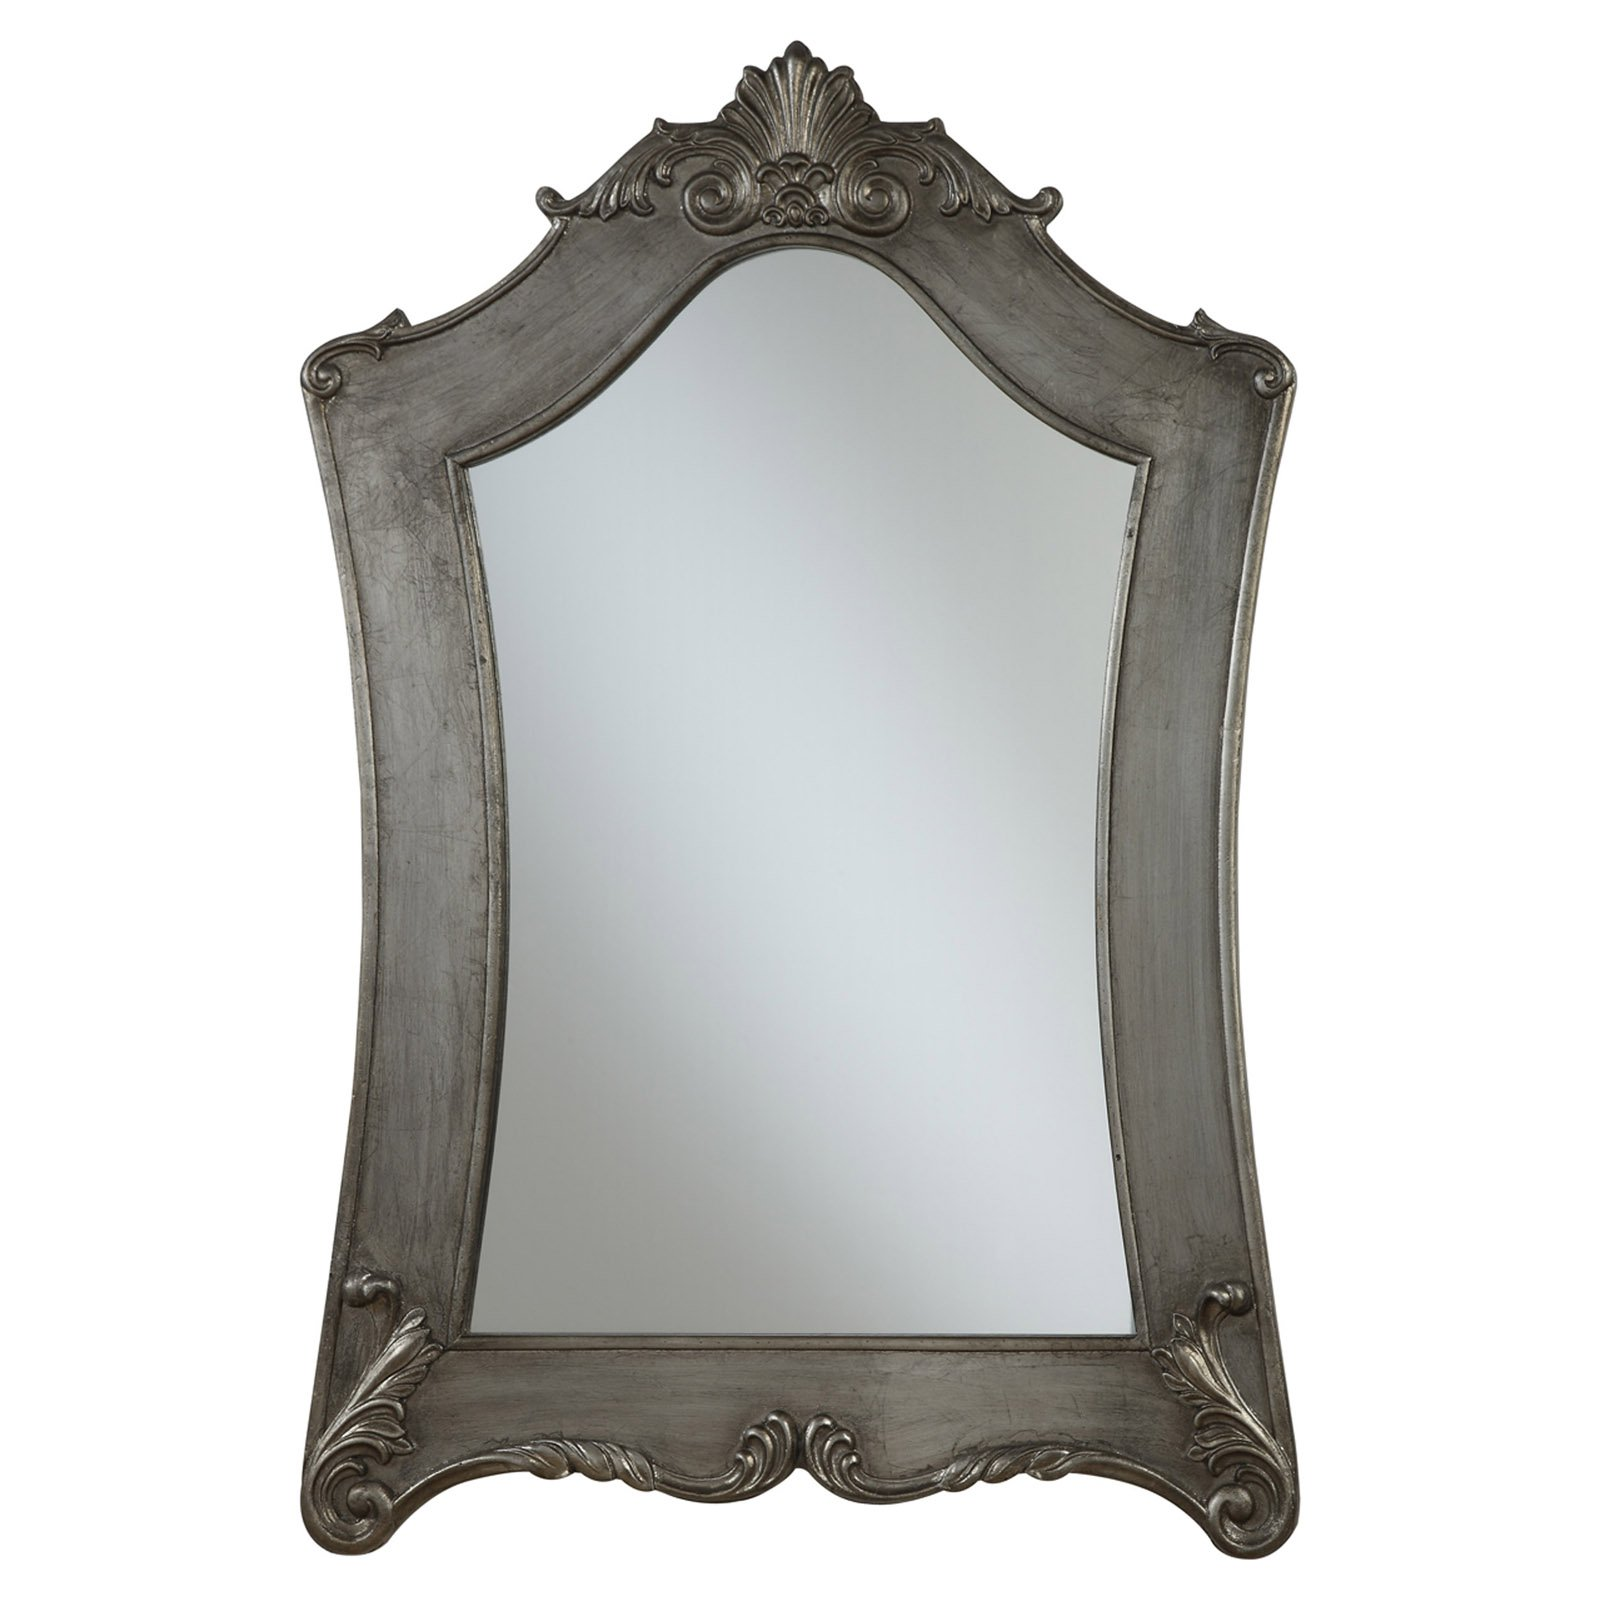 Convenience Concepts Gold Coast Victorian Gold Frame Mirror - 33.5W x 48H in.